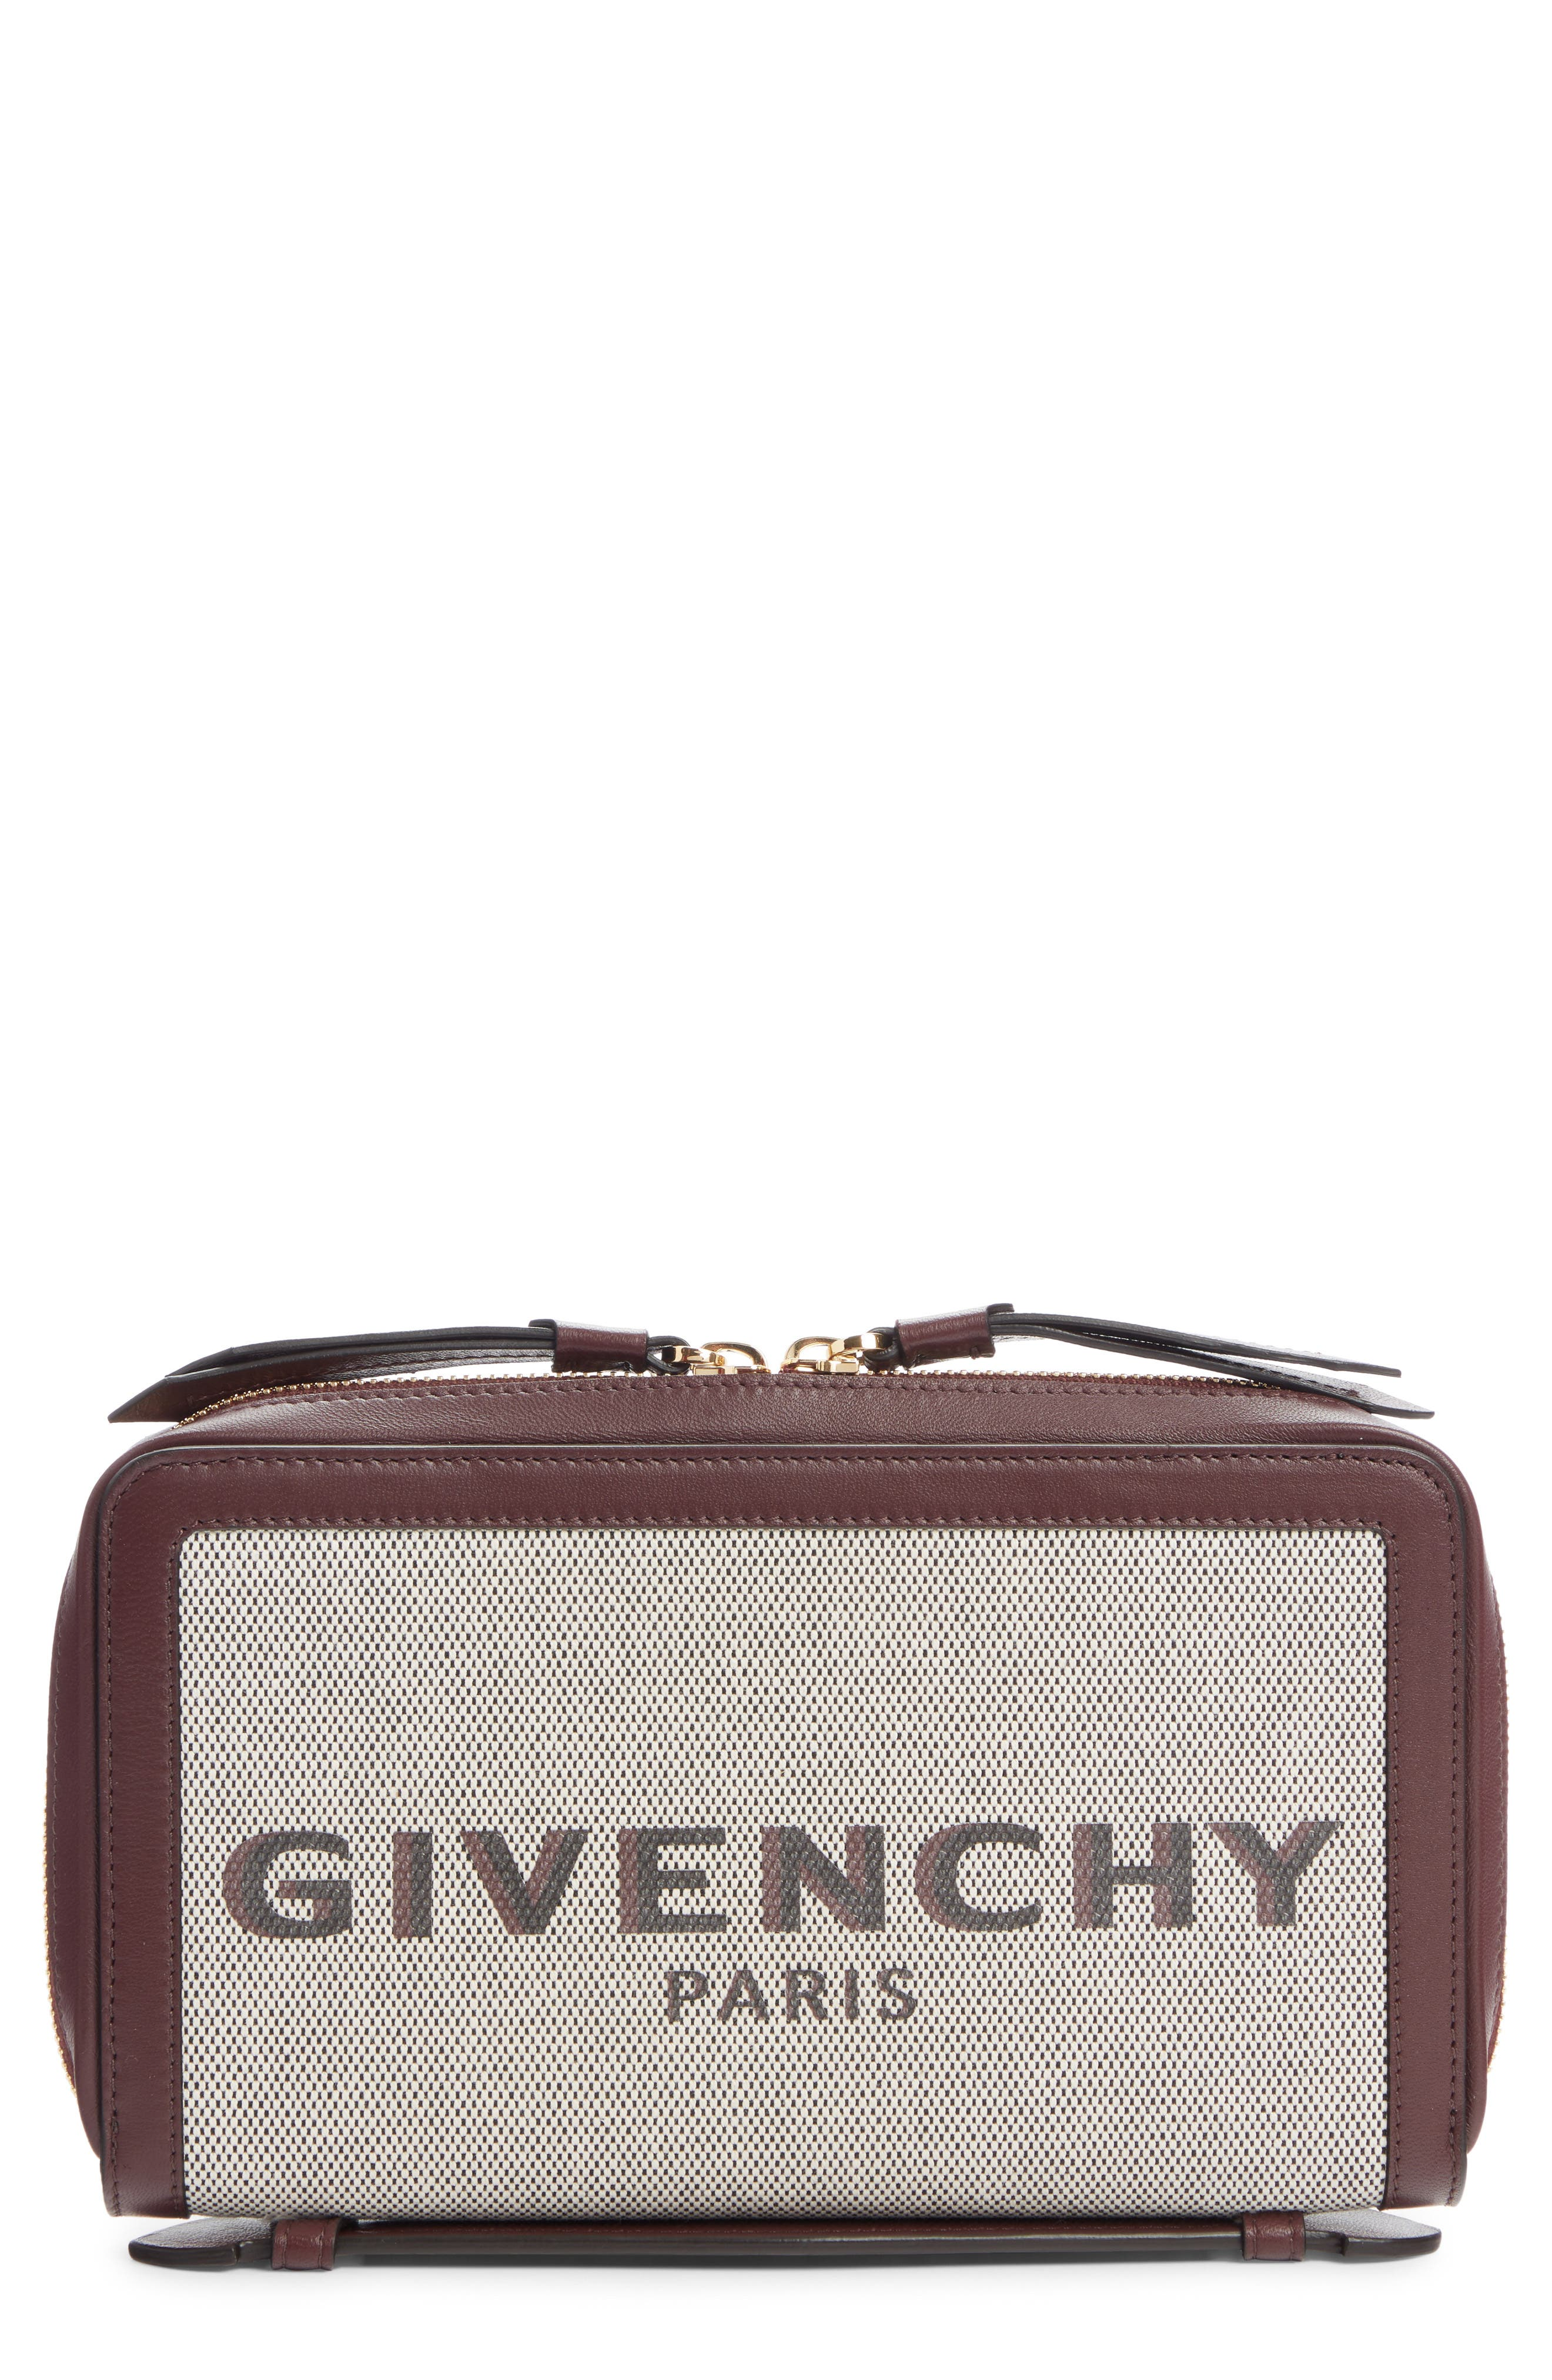 Givenchy Bond Canvas & Leather Travel Wallet   Nordstrom